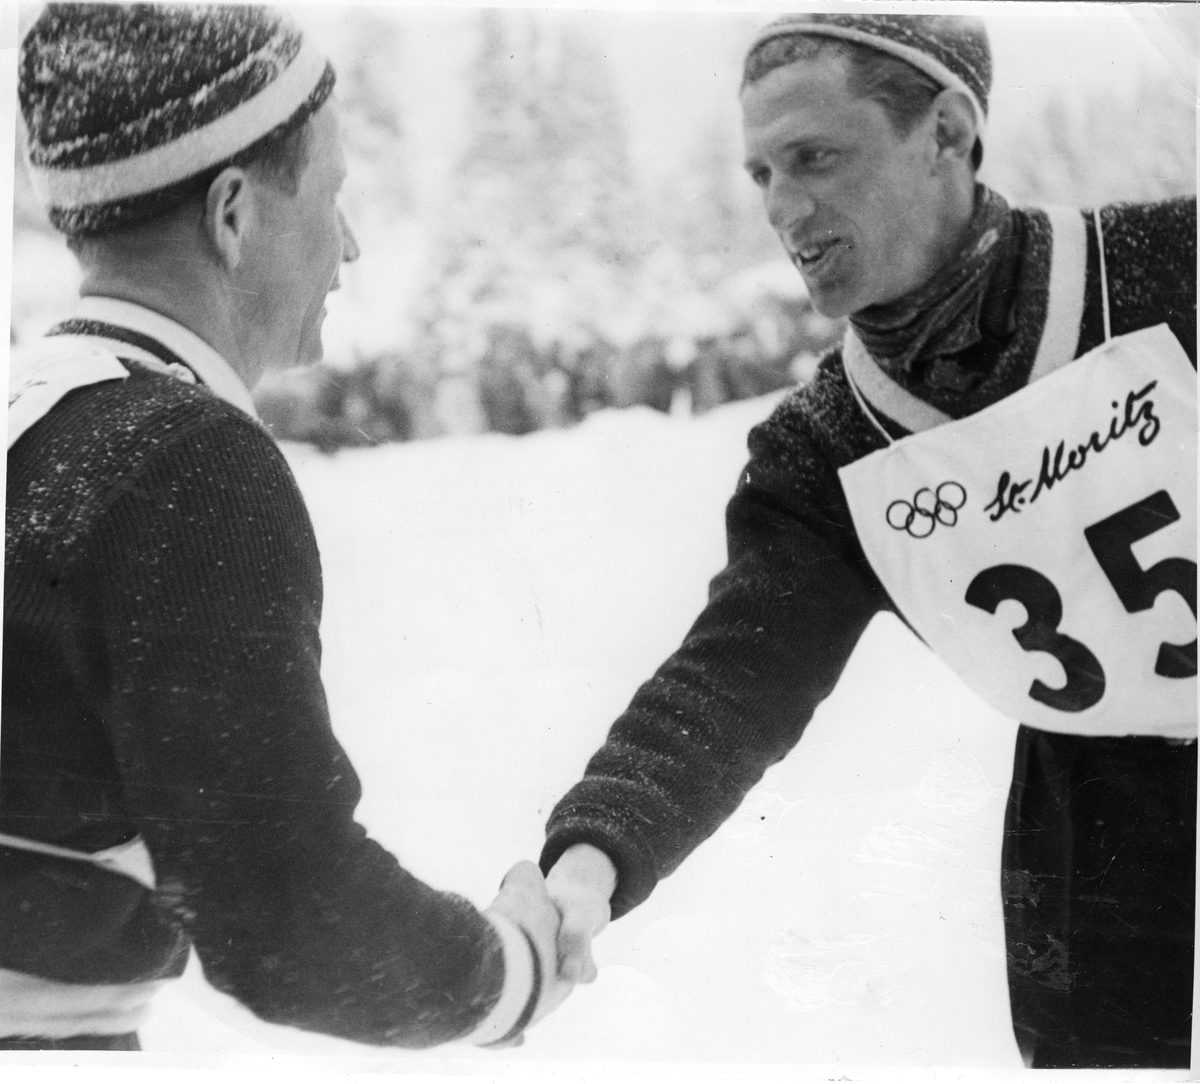 Birger Ruud congratulates Petter Hugsted in St. Moritz 1948